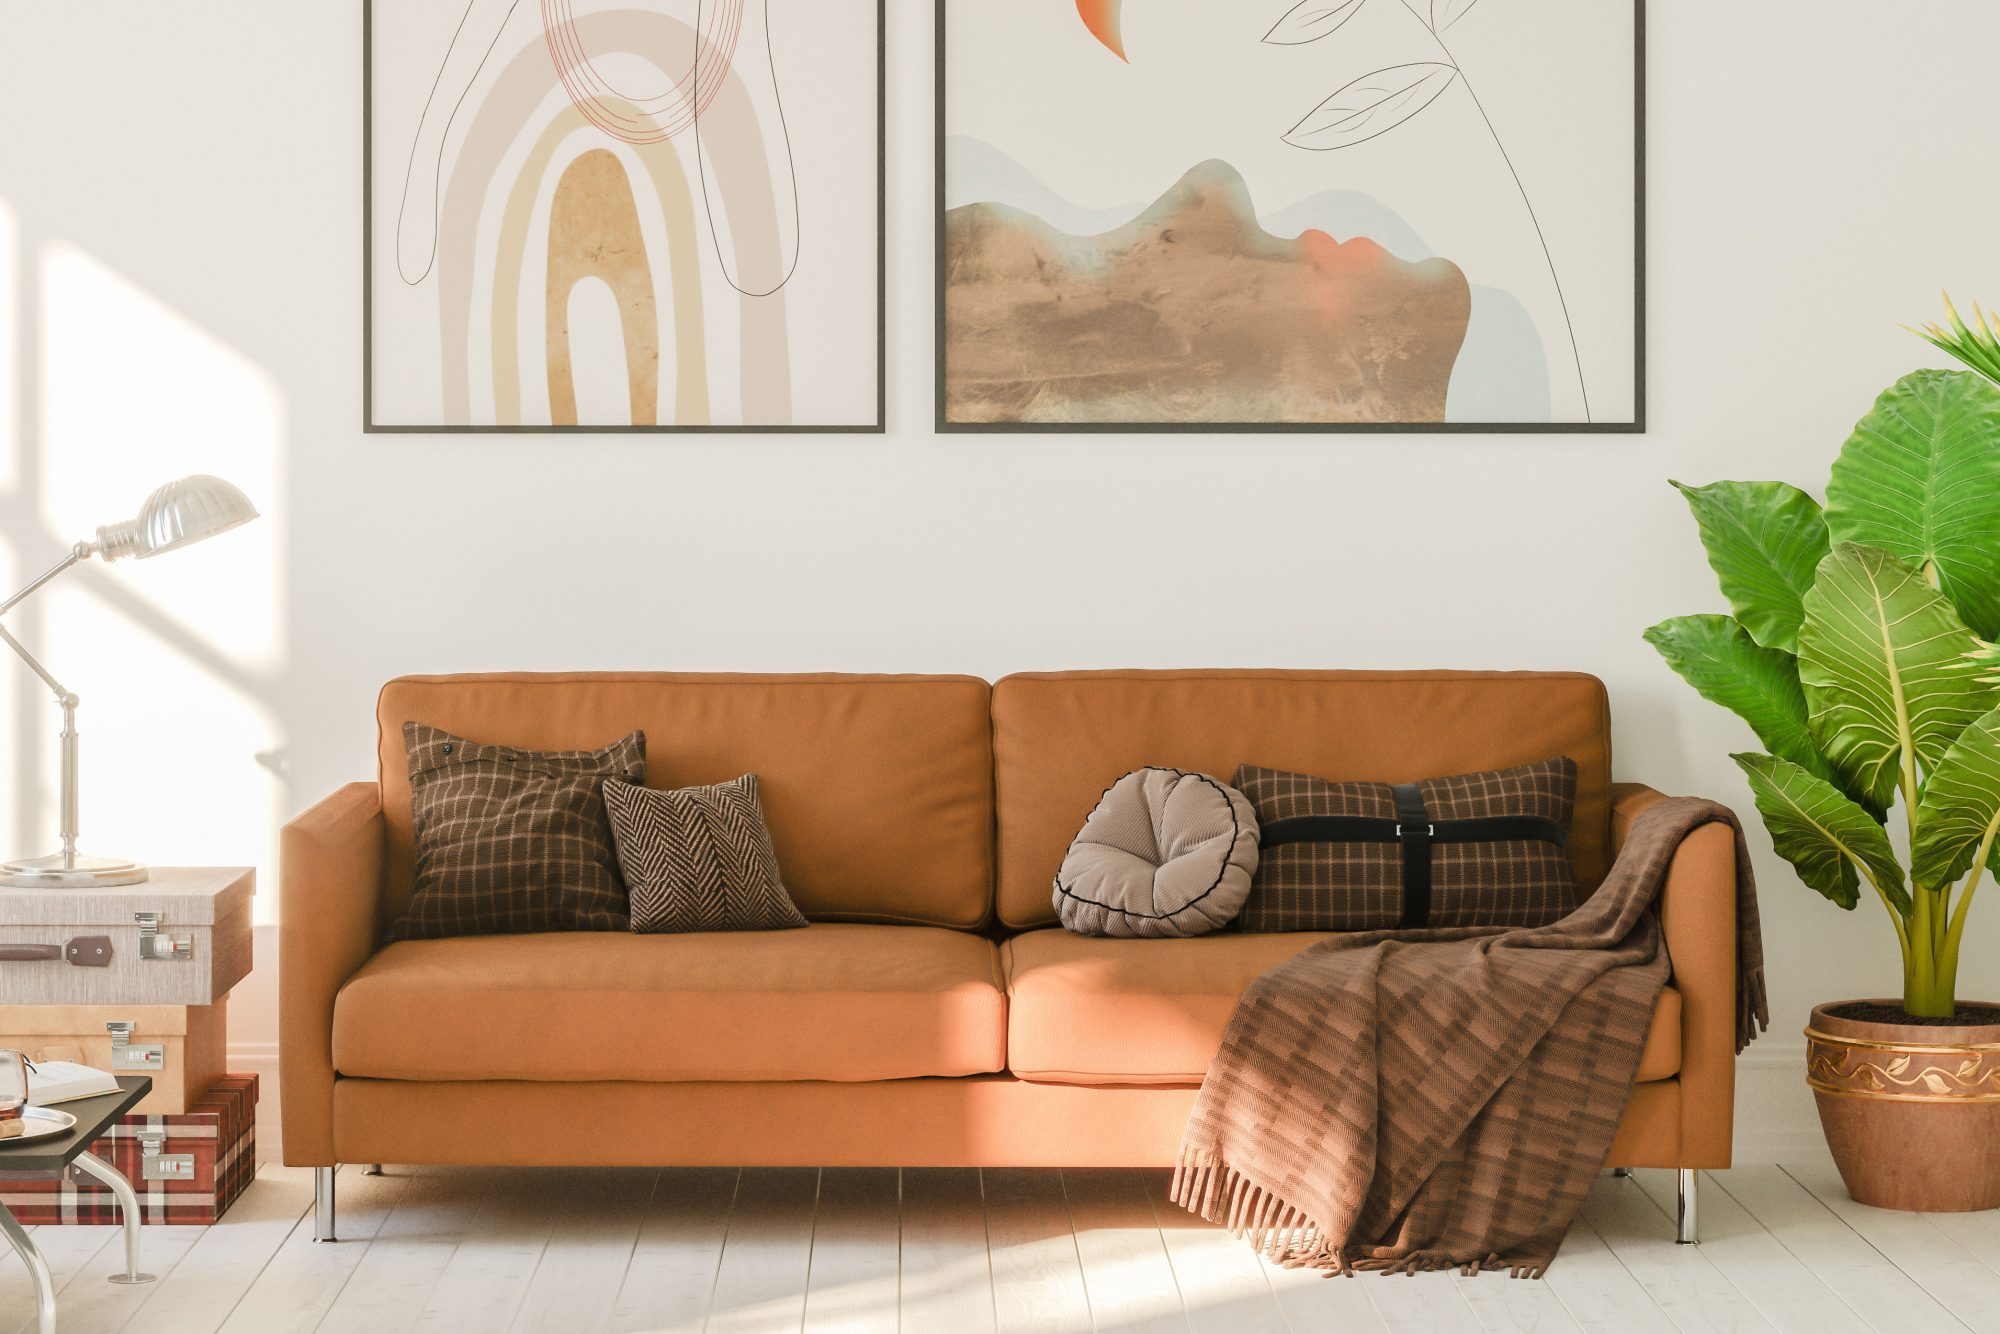 boho style living room with brown couch